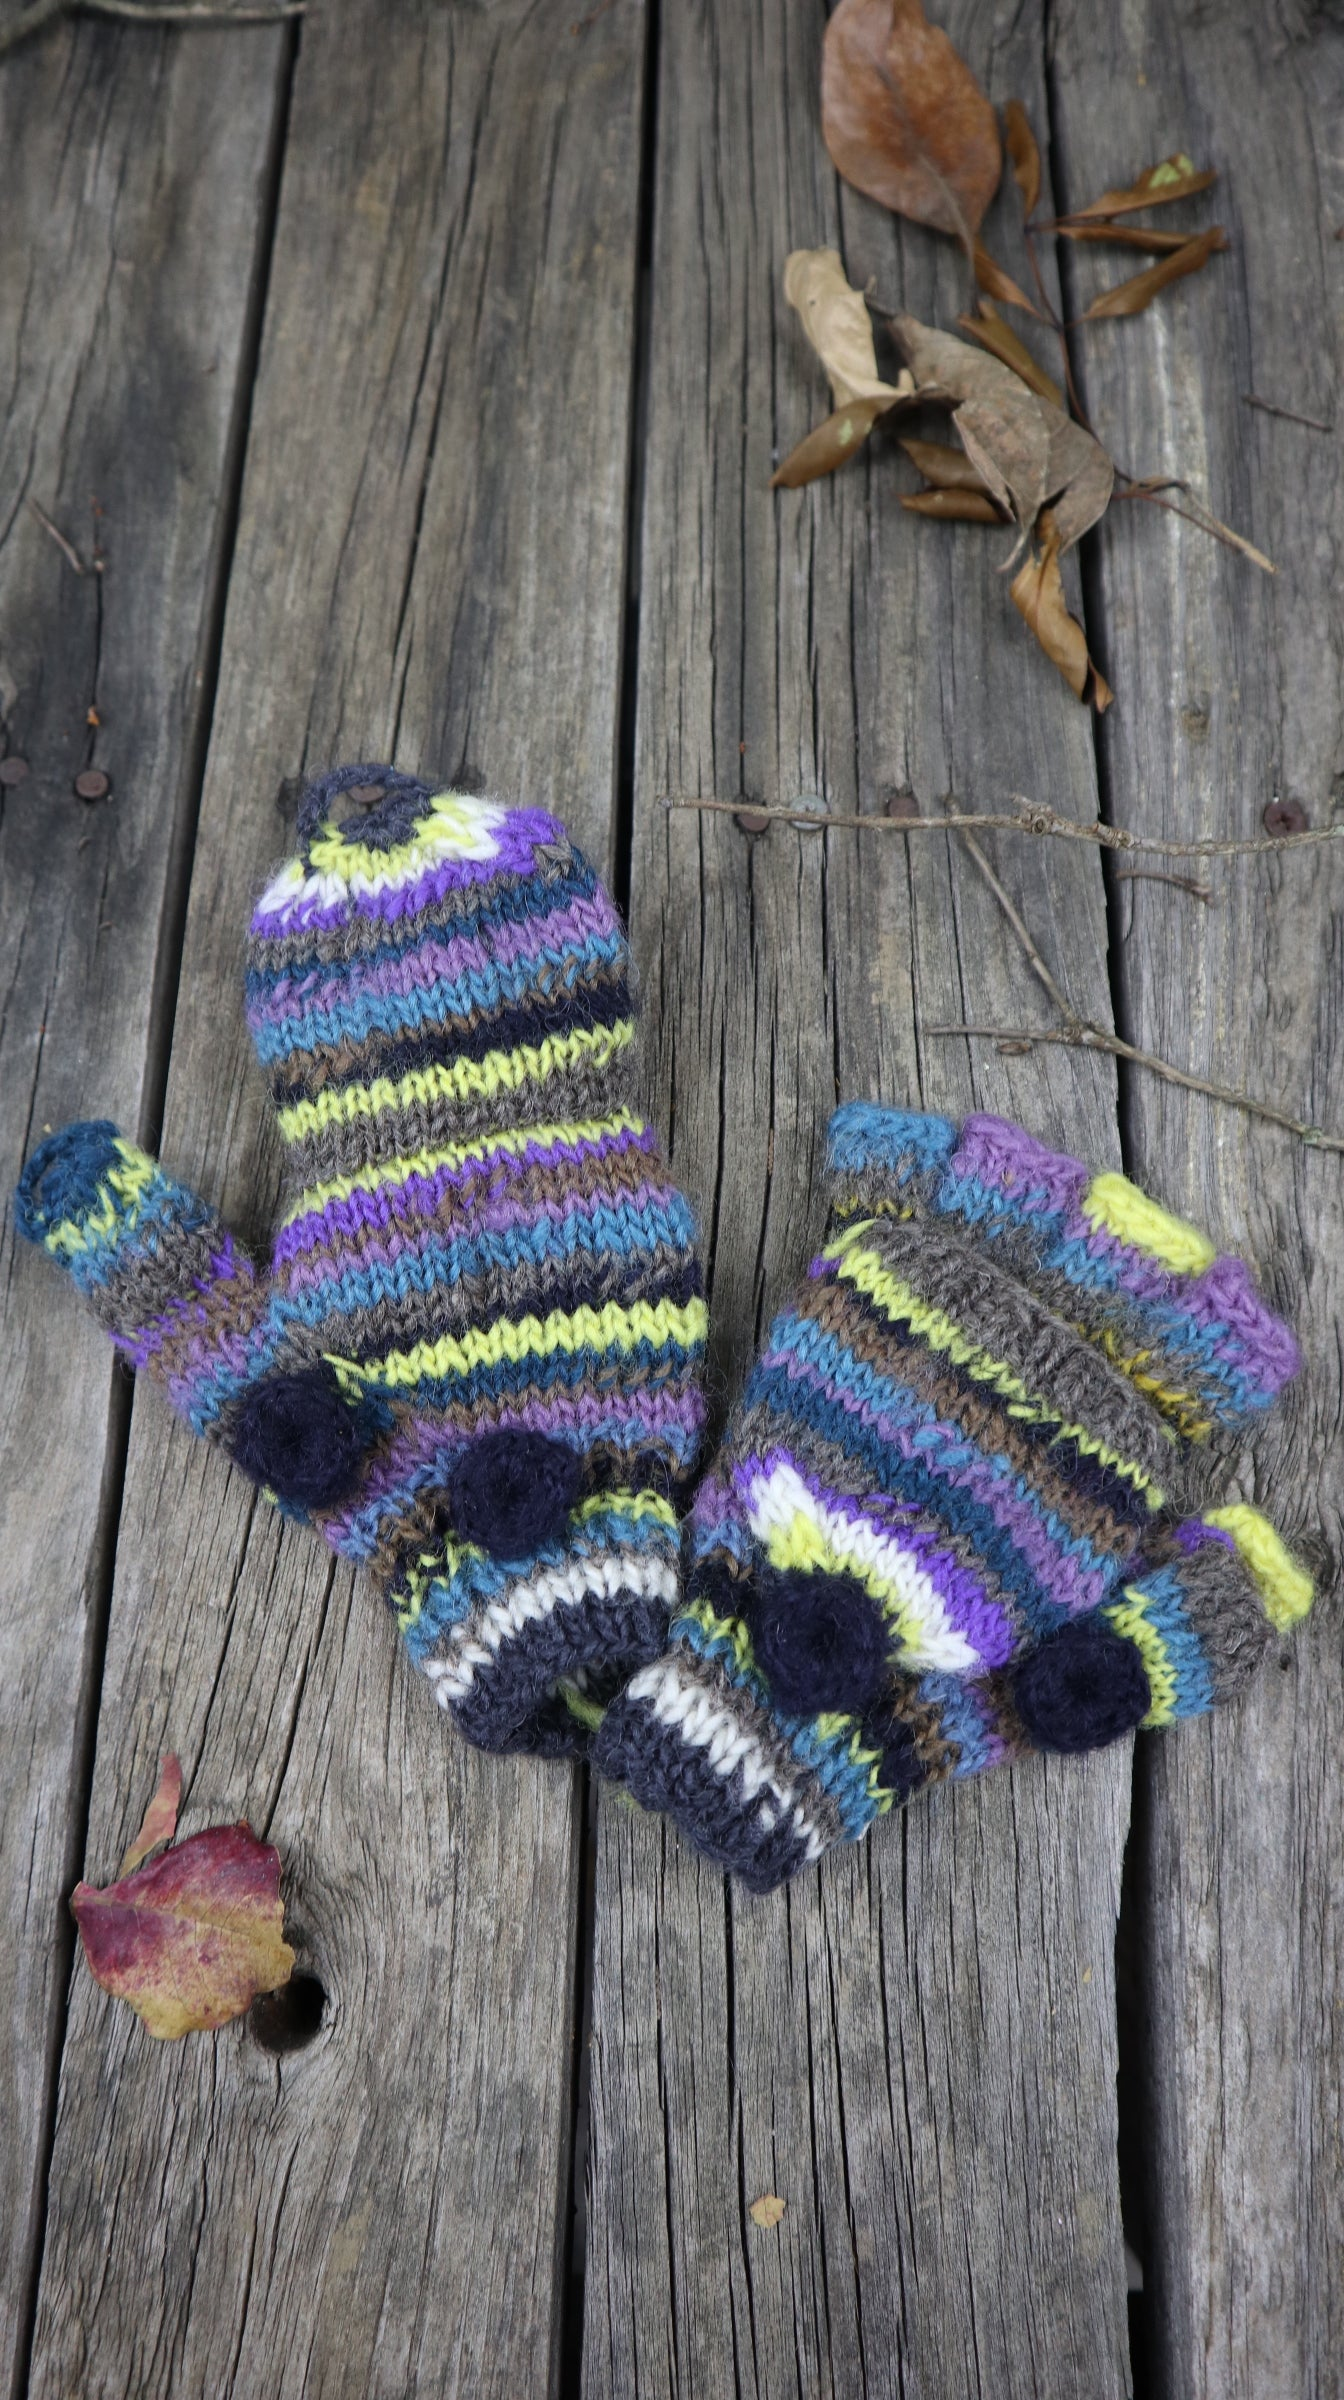 Fair Trade Ethical Children's Striped Fingerless Gloves with Cap in  Purple, Yellow and Brown